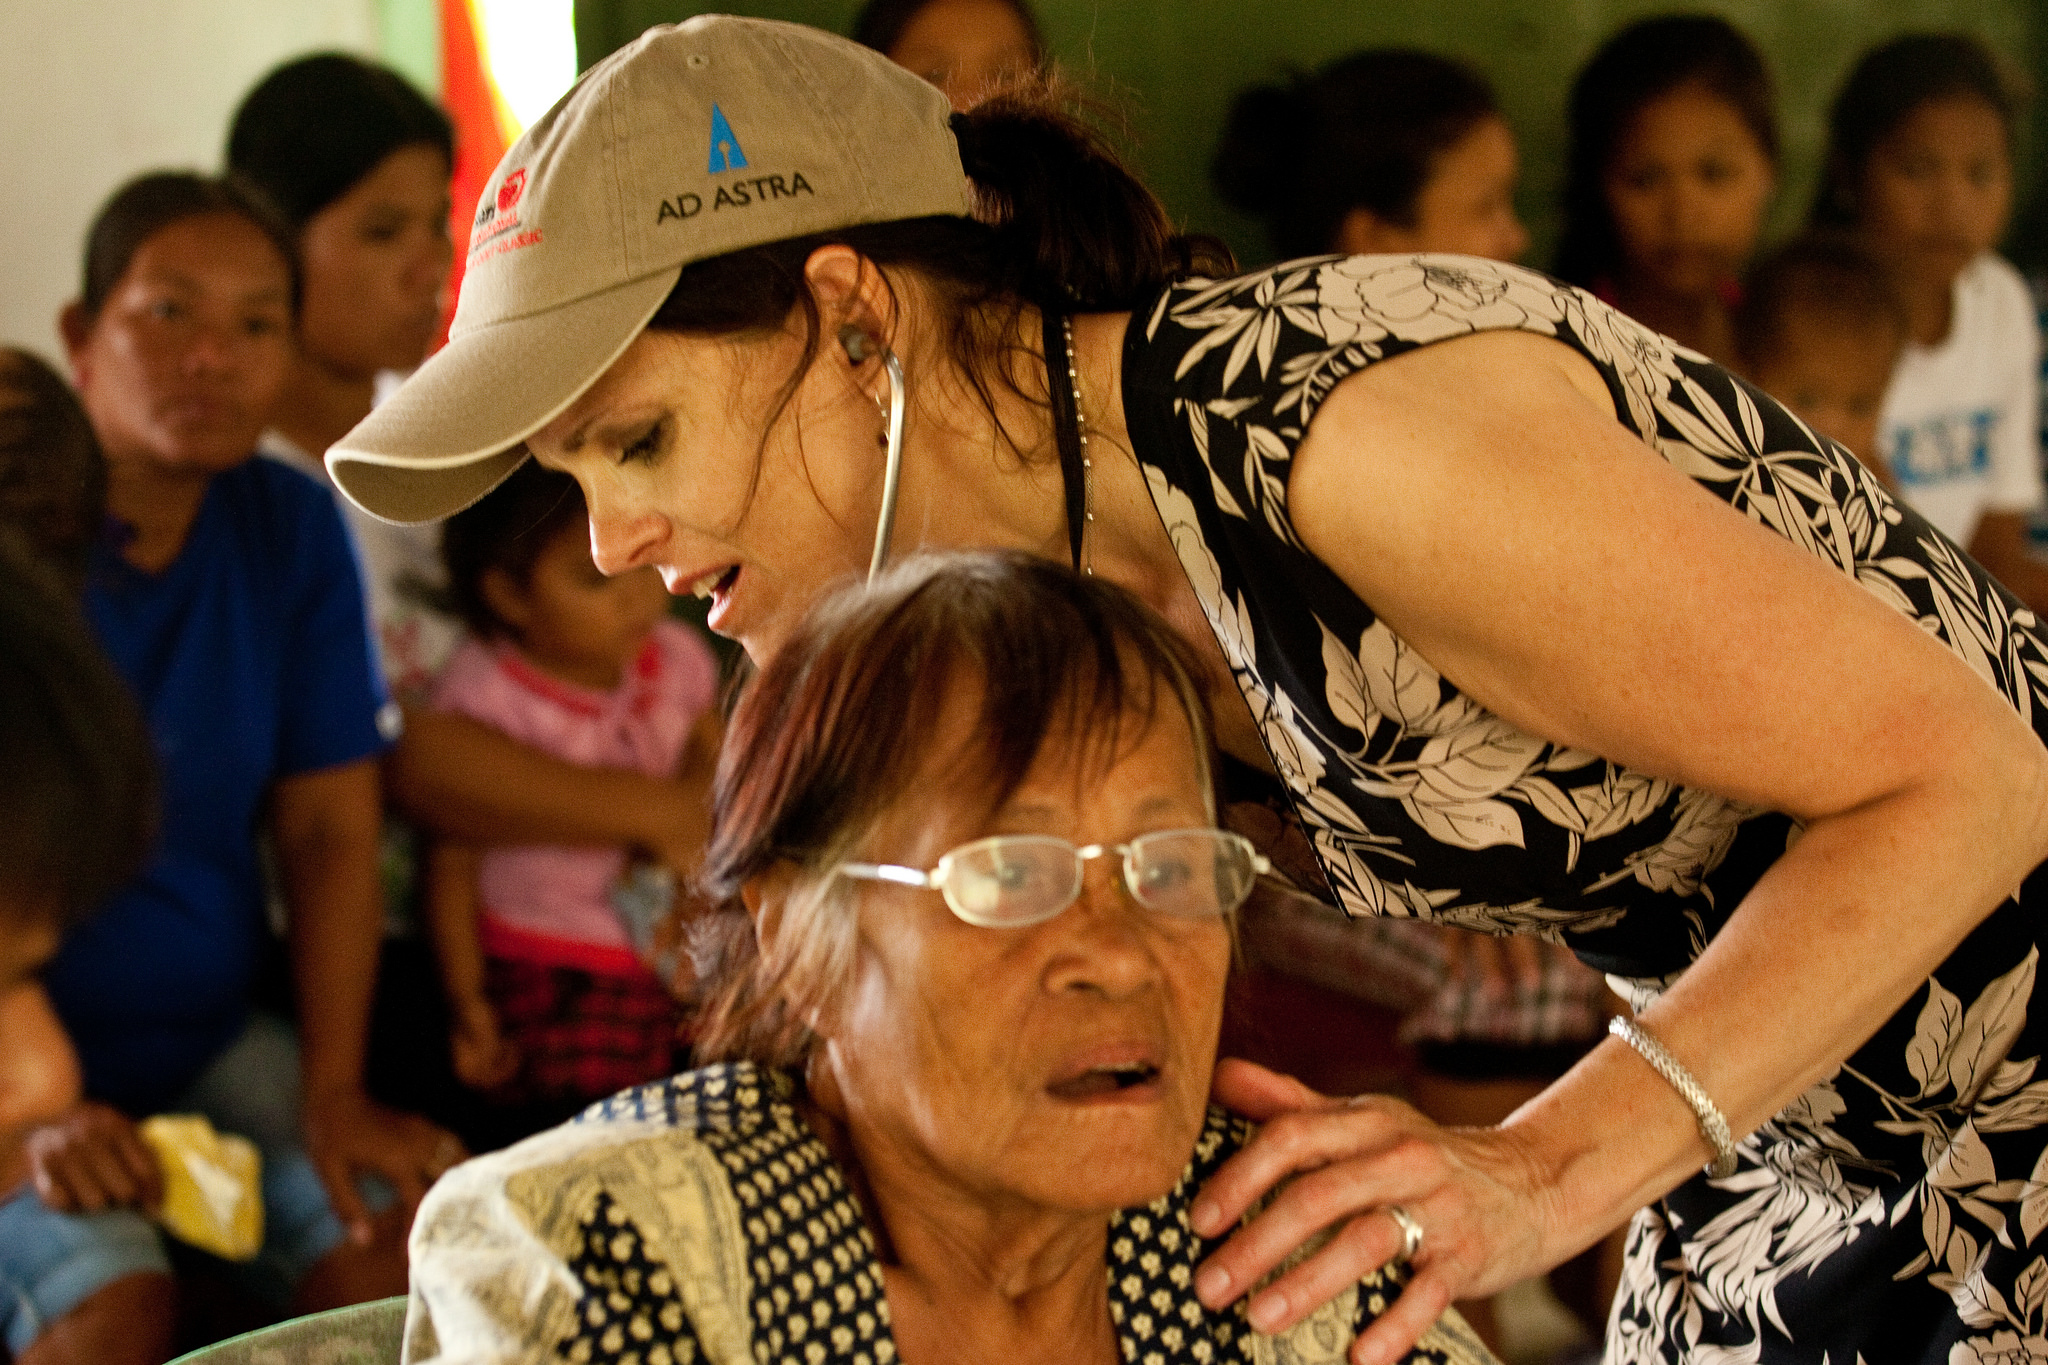 Phillipines - Nancy with woman